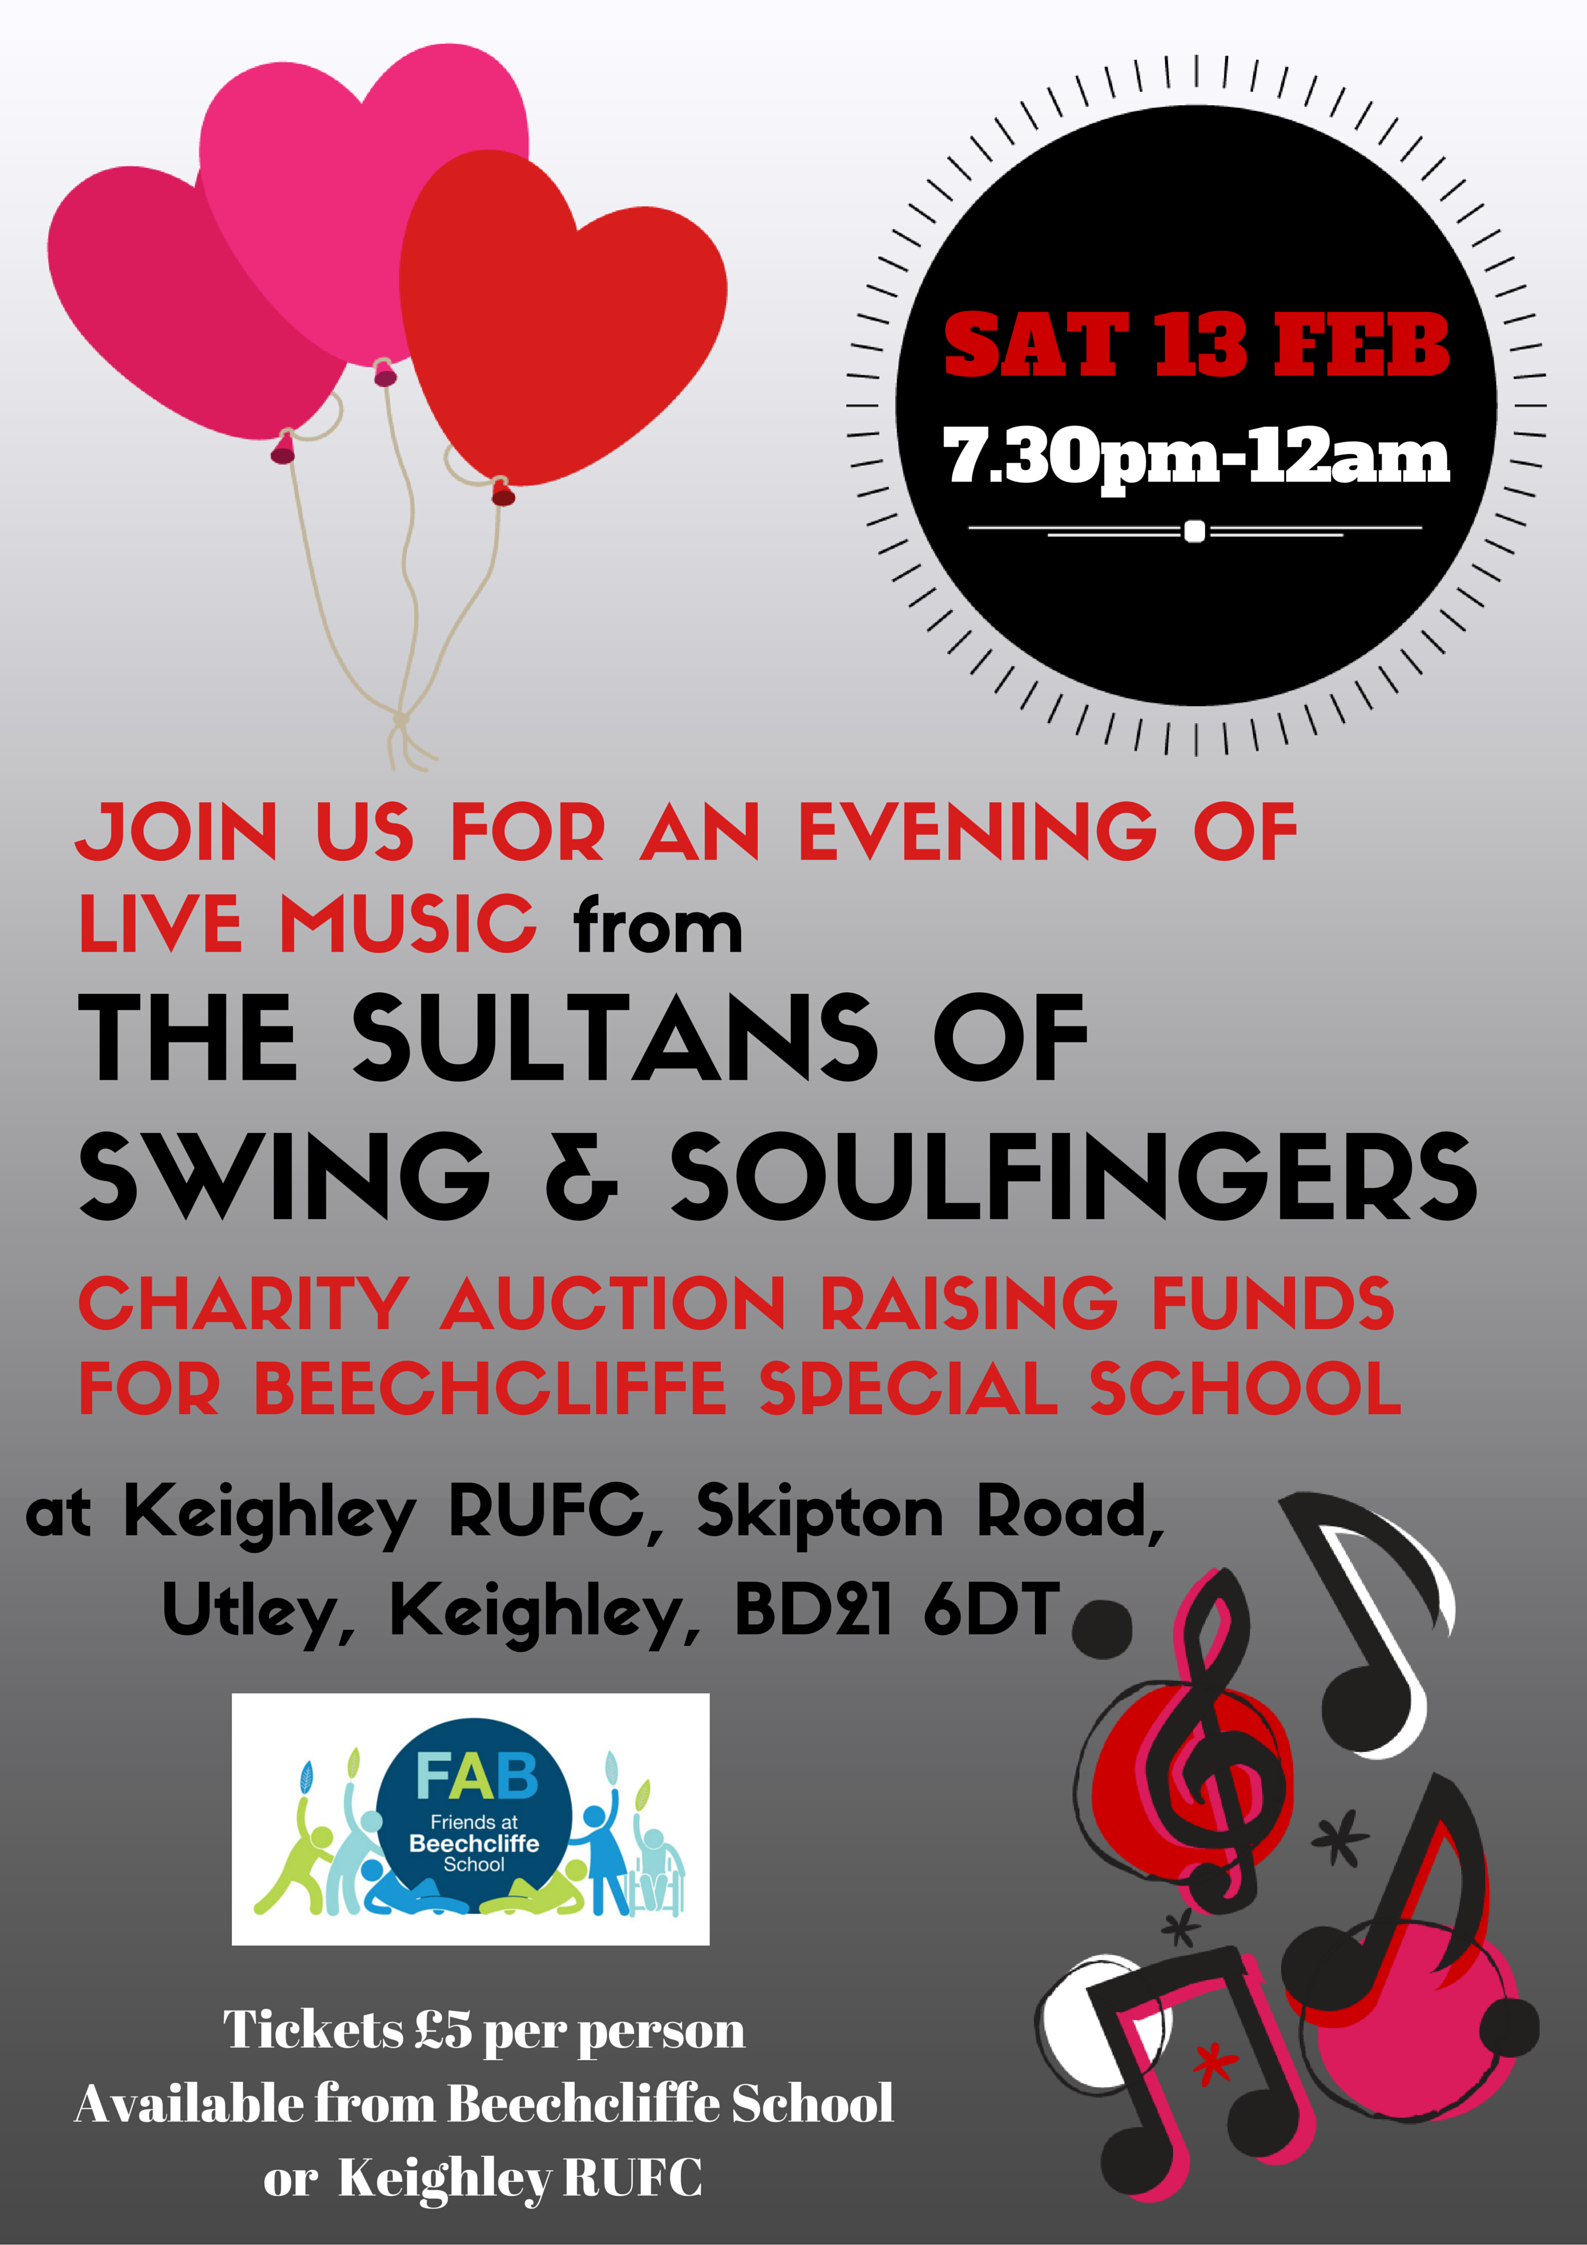 Live Music and Charity Auction Evening